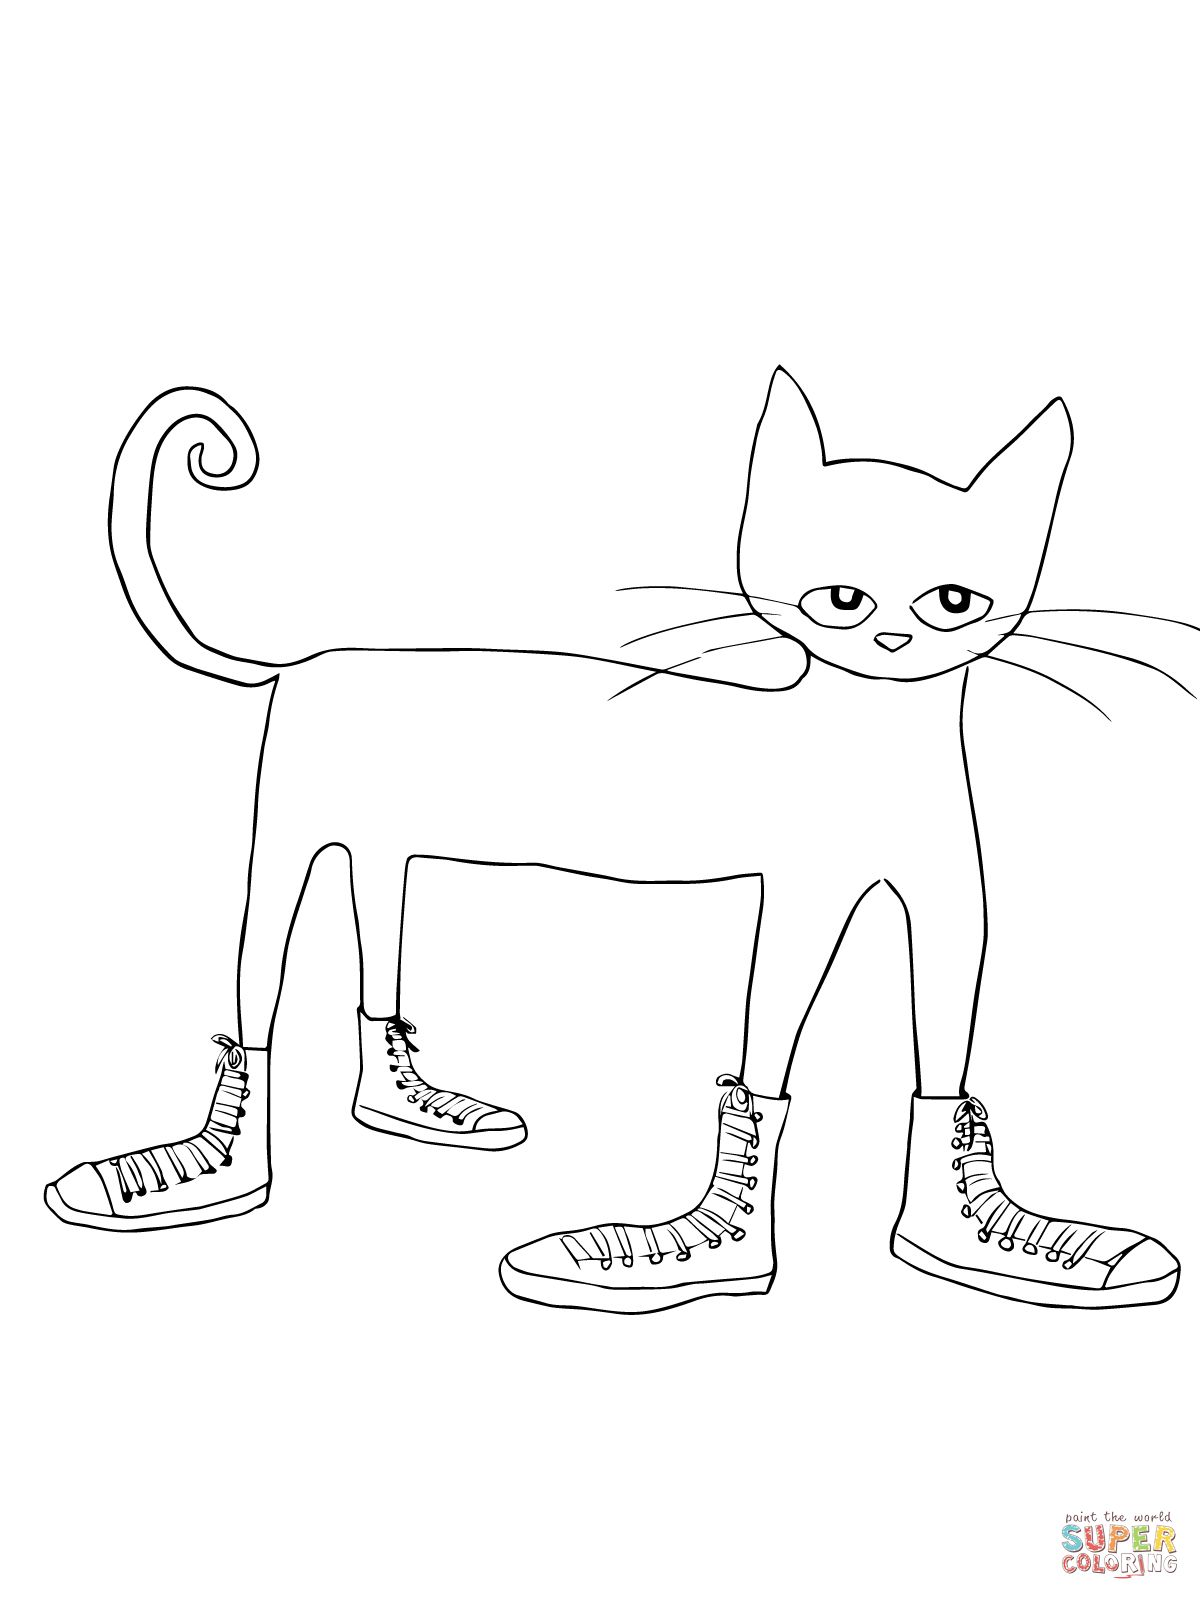 Pete The Cat I Love My White Shoes Coloring Page Supercoloring